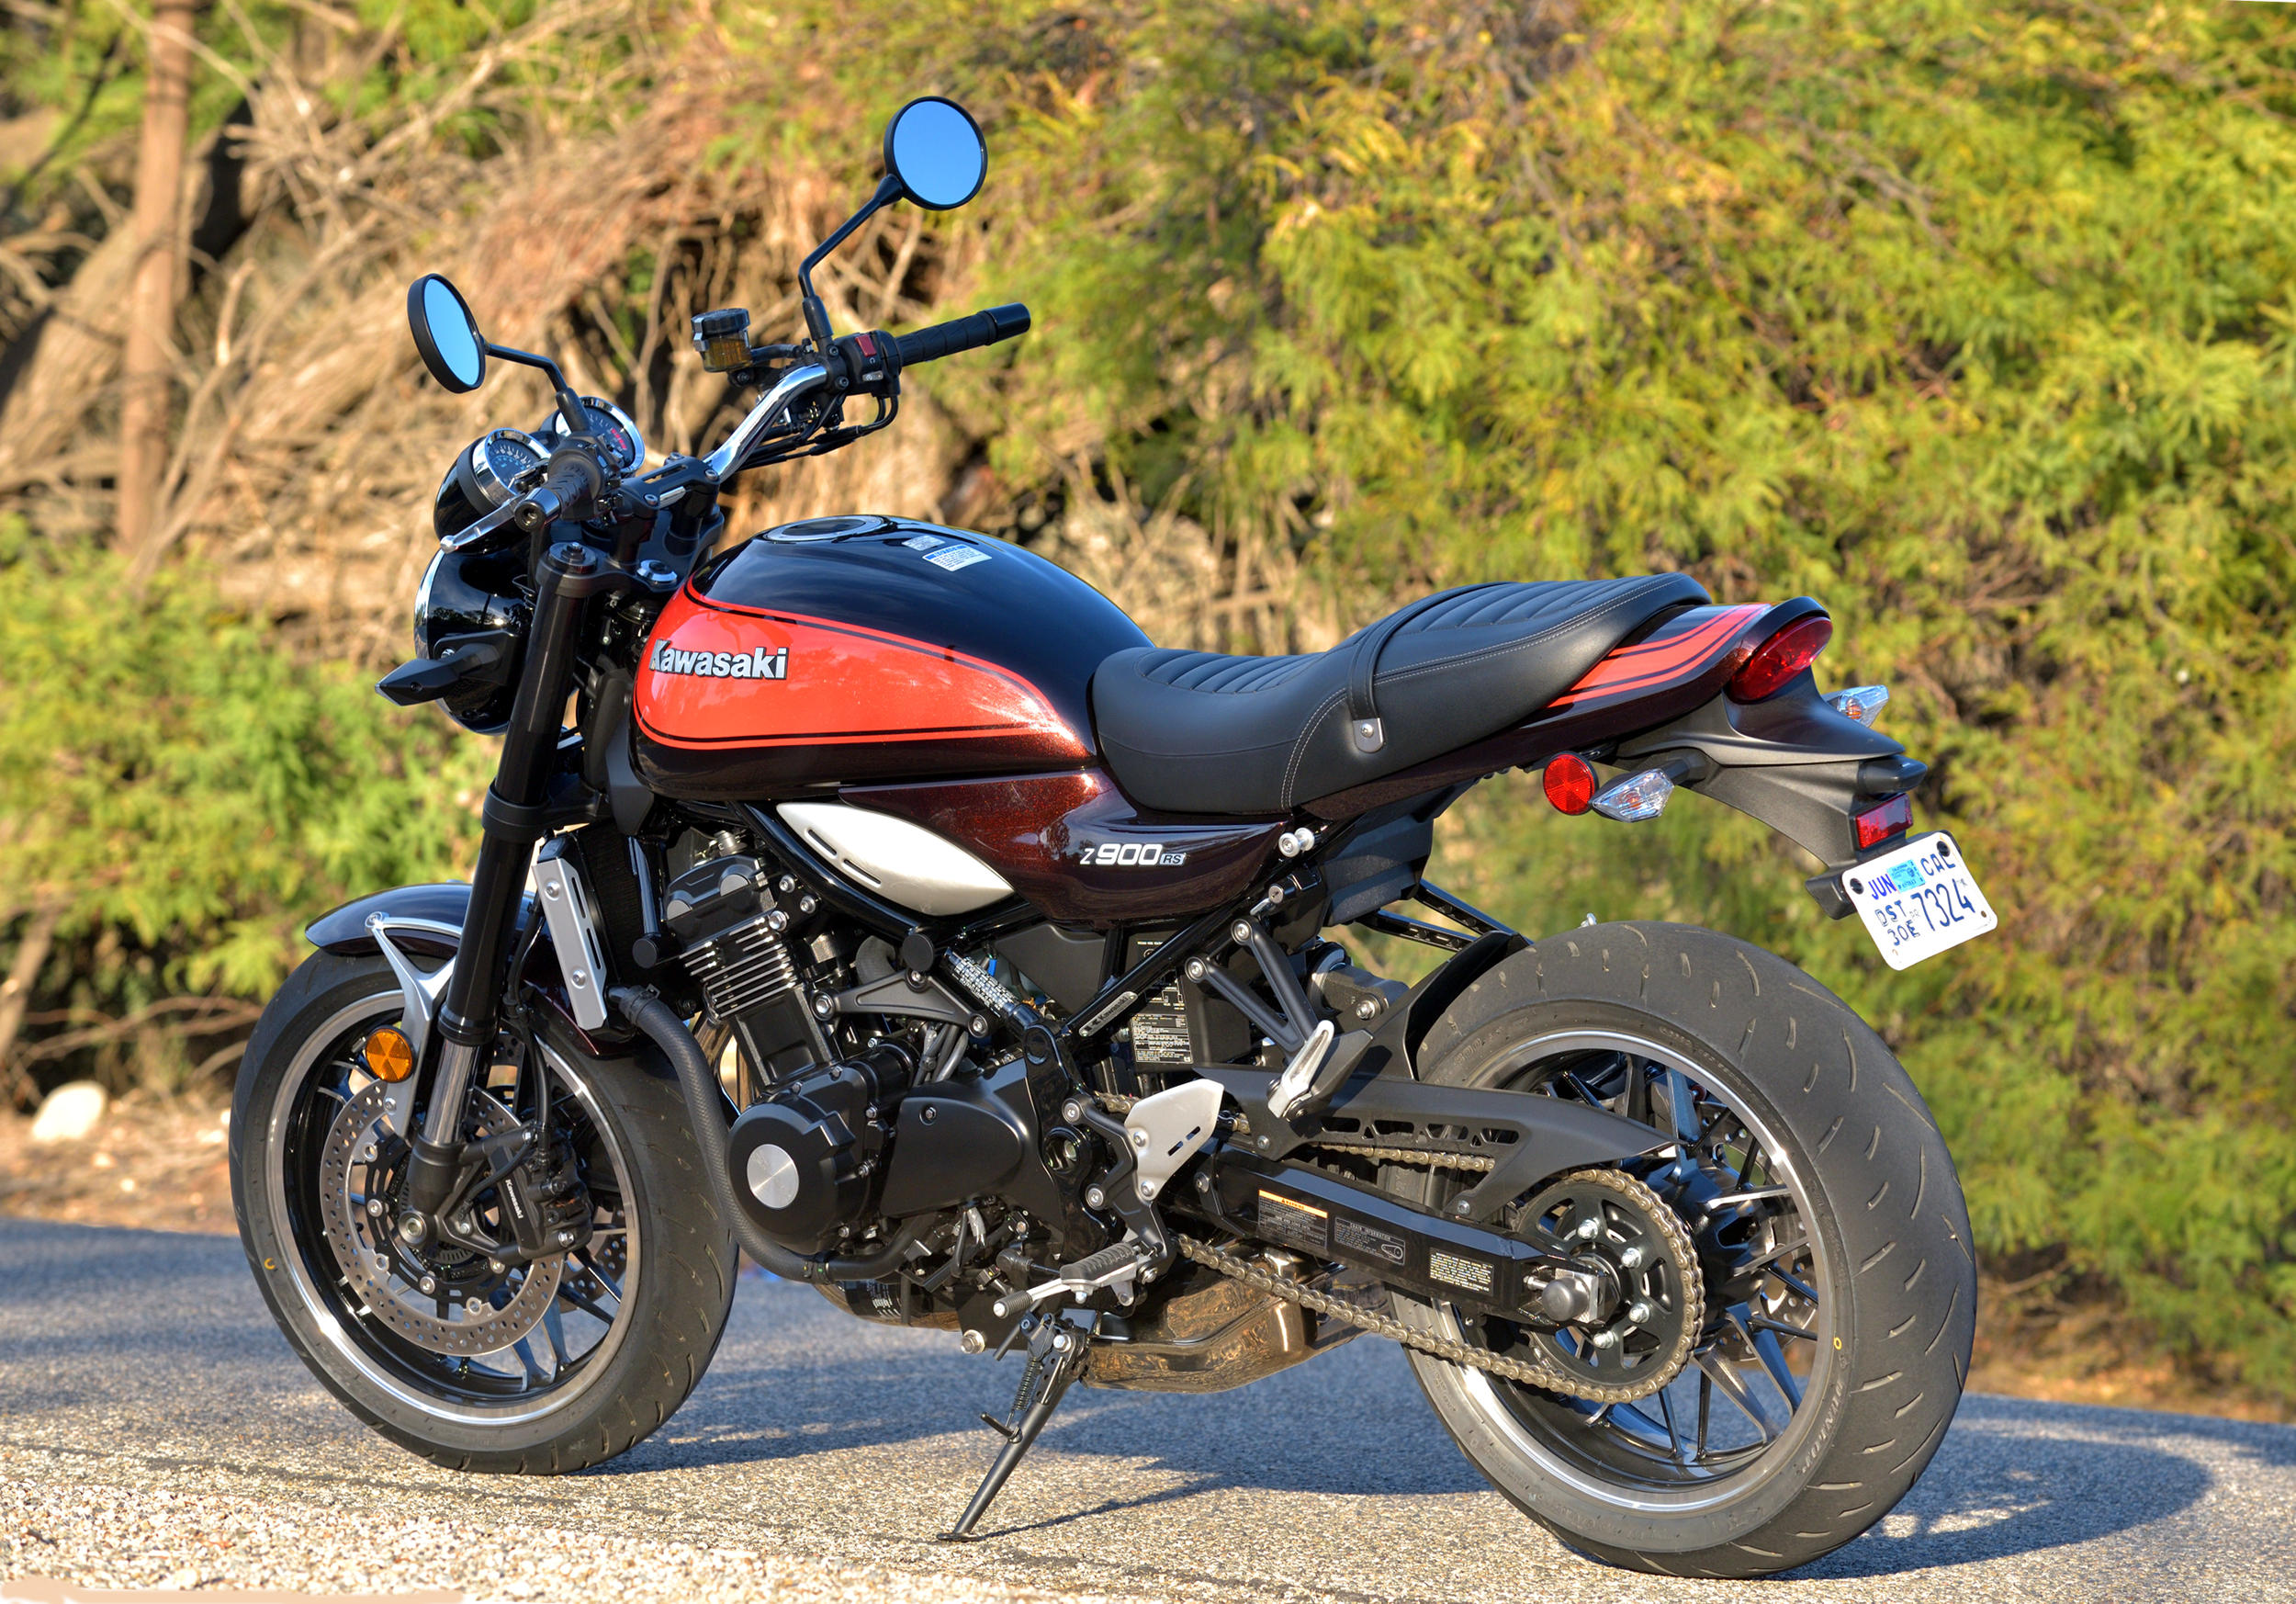 Despite Styling That Is Reminiscent Of A 1970s Era Kawasaki Z1 This Very Much Modern Motorcycle In Terms Performance